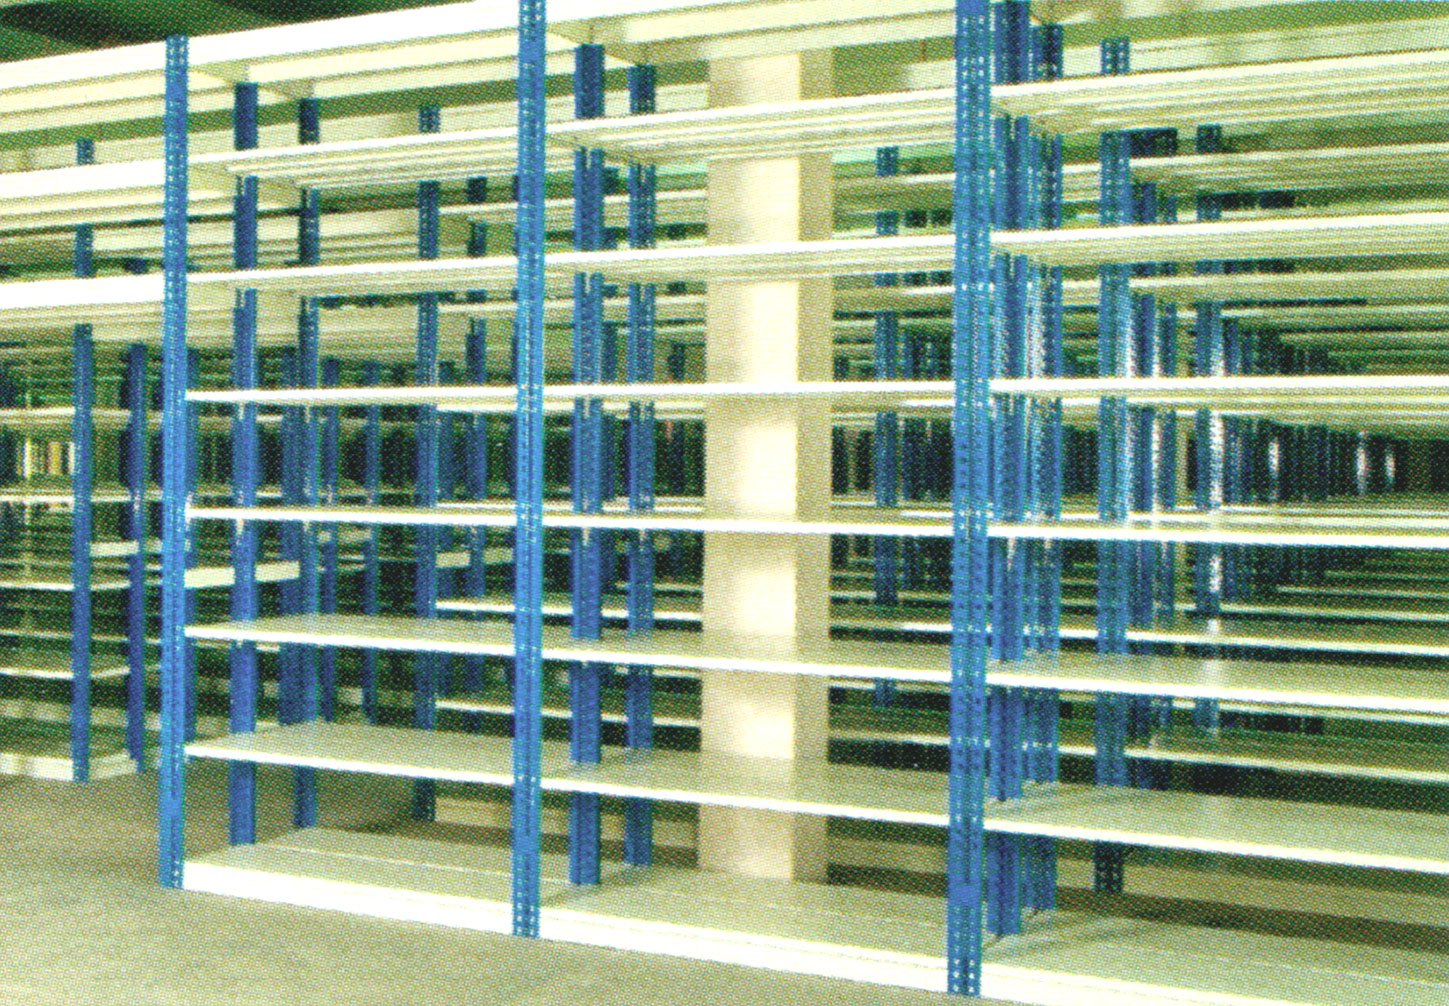 Boltless Shelving System with Steel Shelve